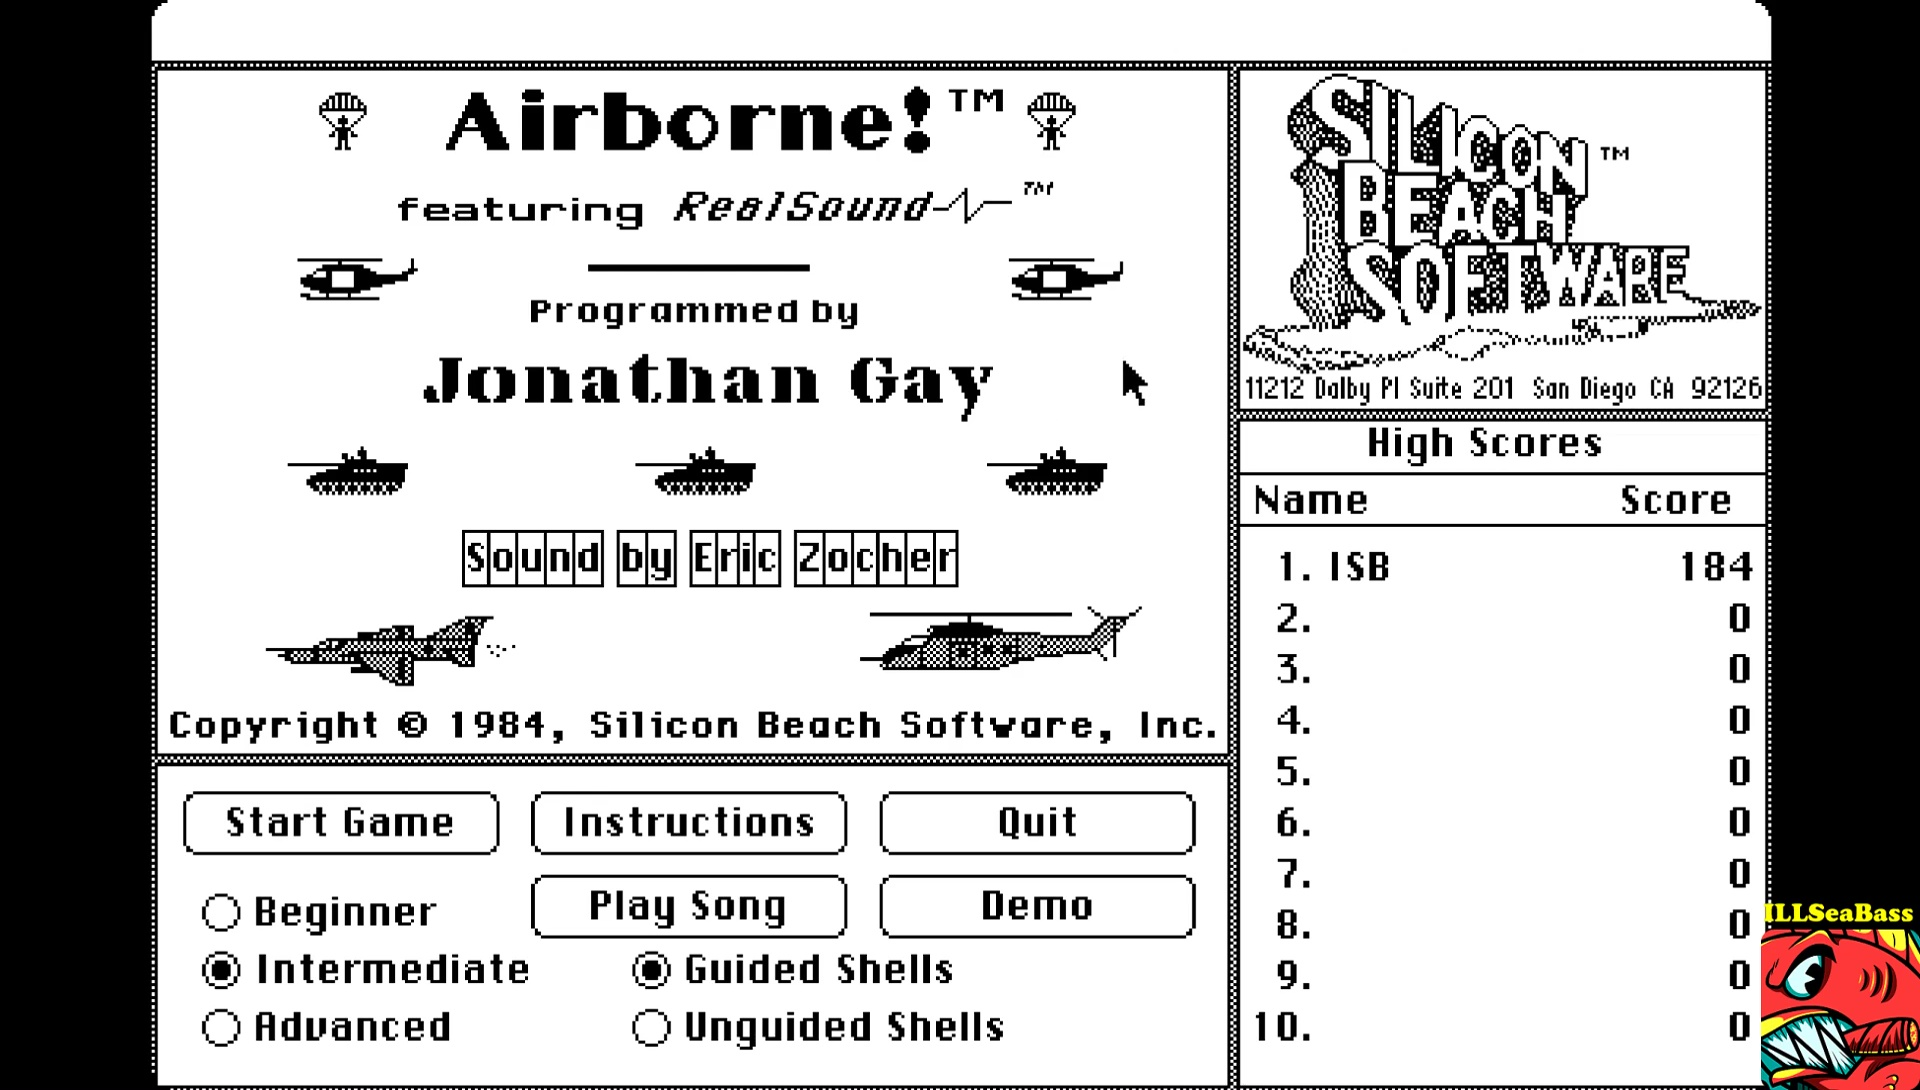 ILLSeaBass: Airborne! [Intermediate] (Mac OS Emulated) 184 points on 2017-05-20 13:05:03